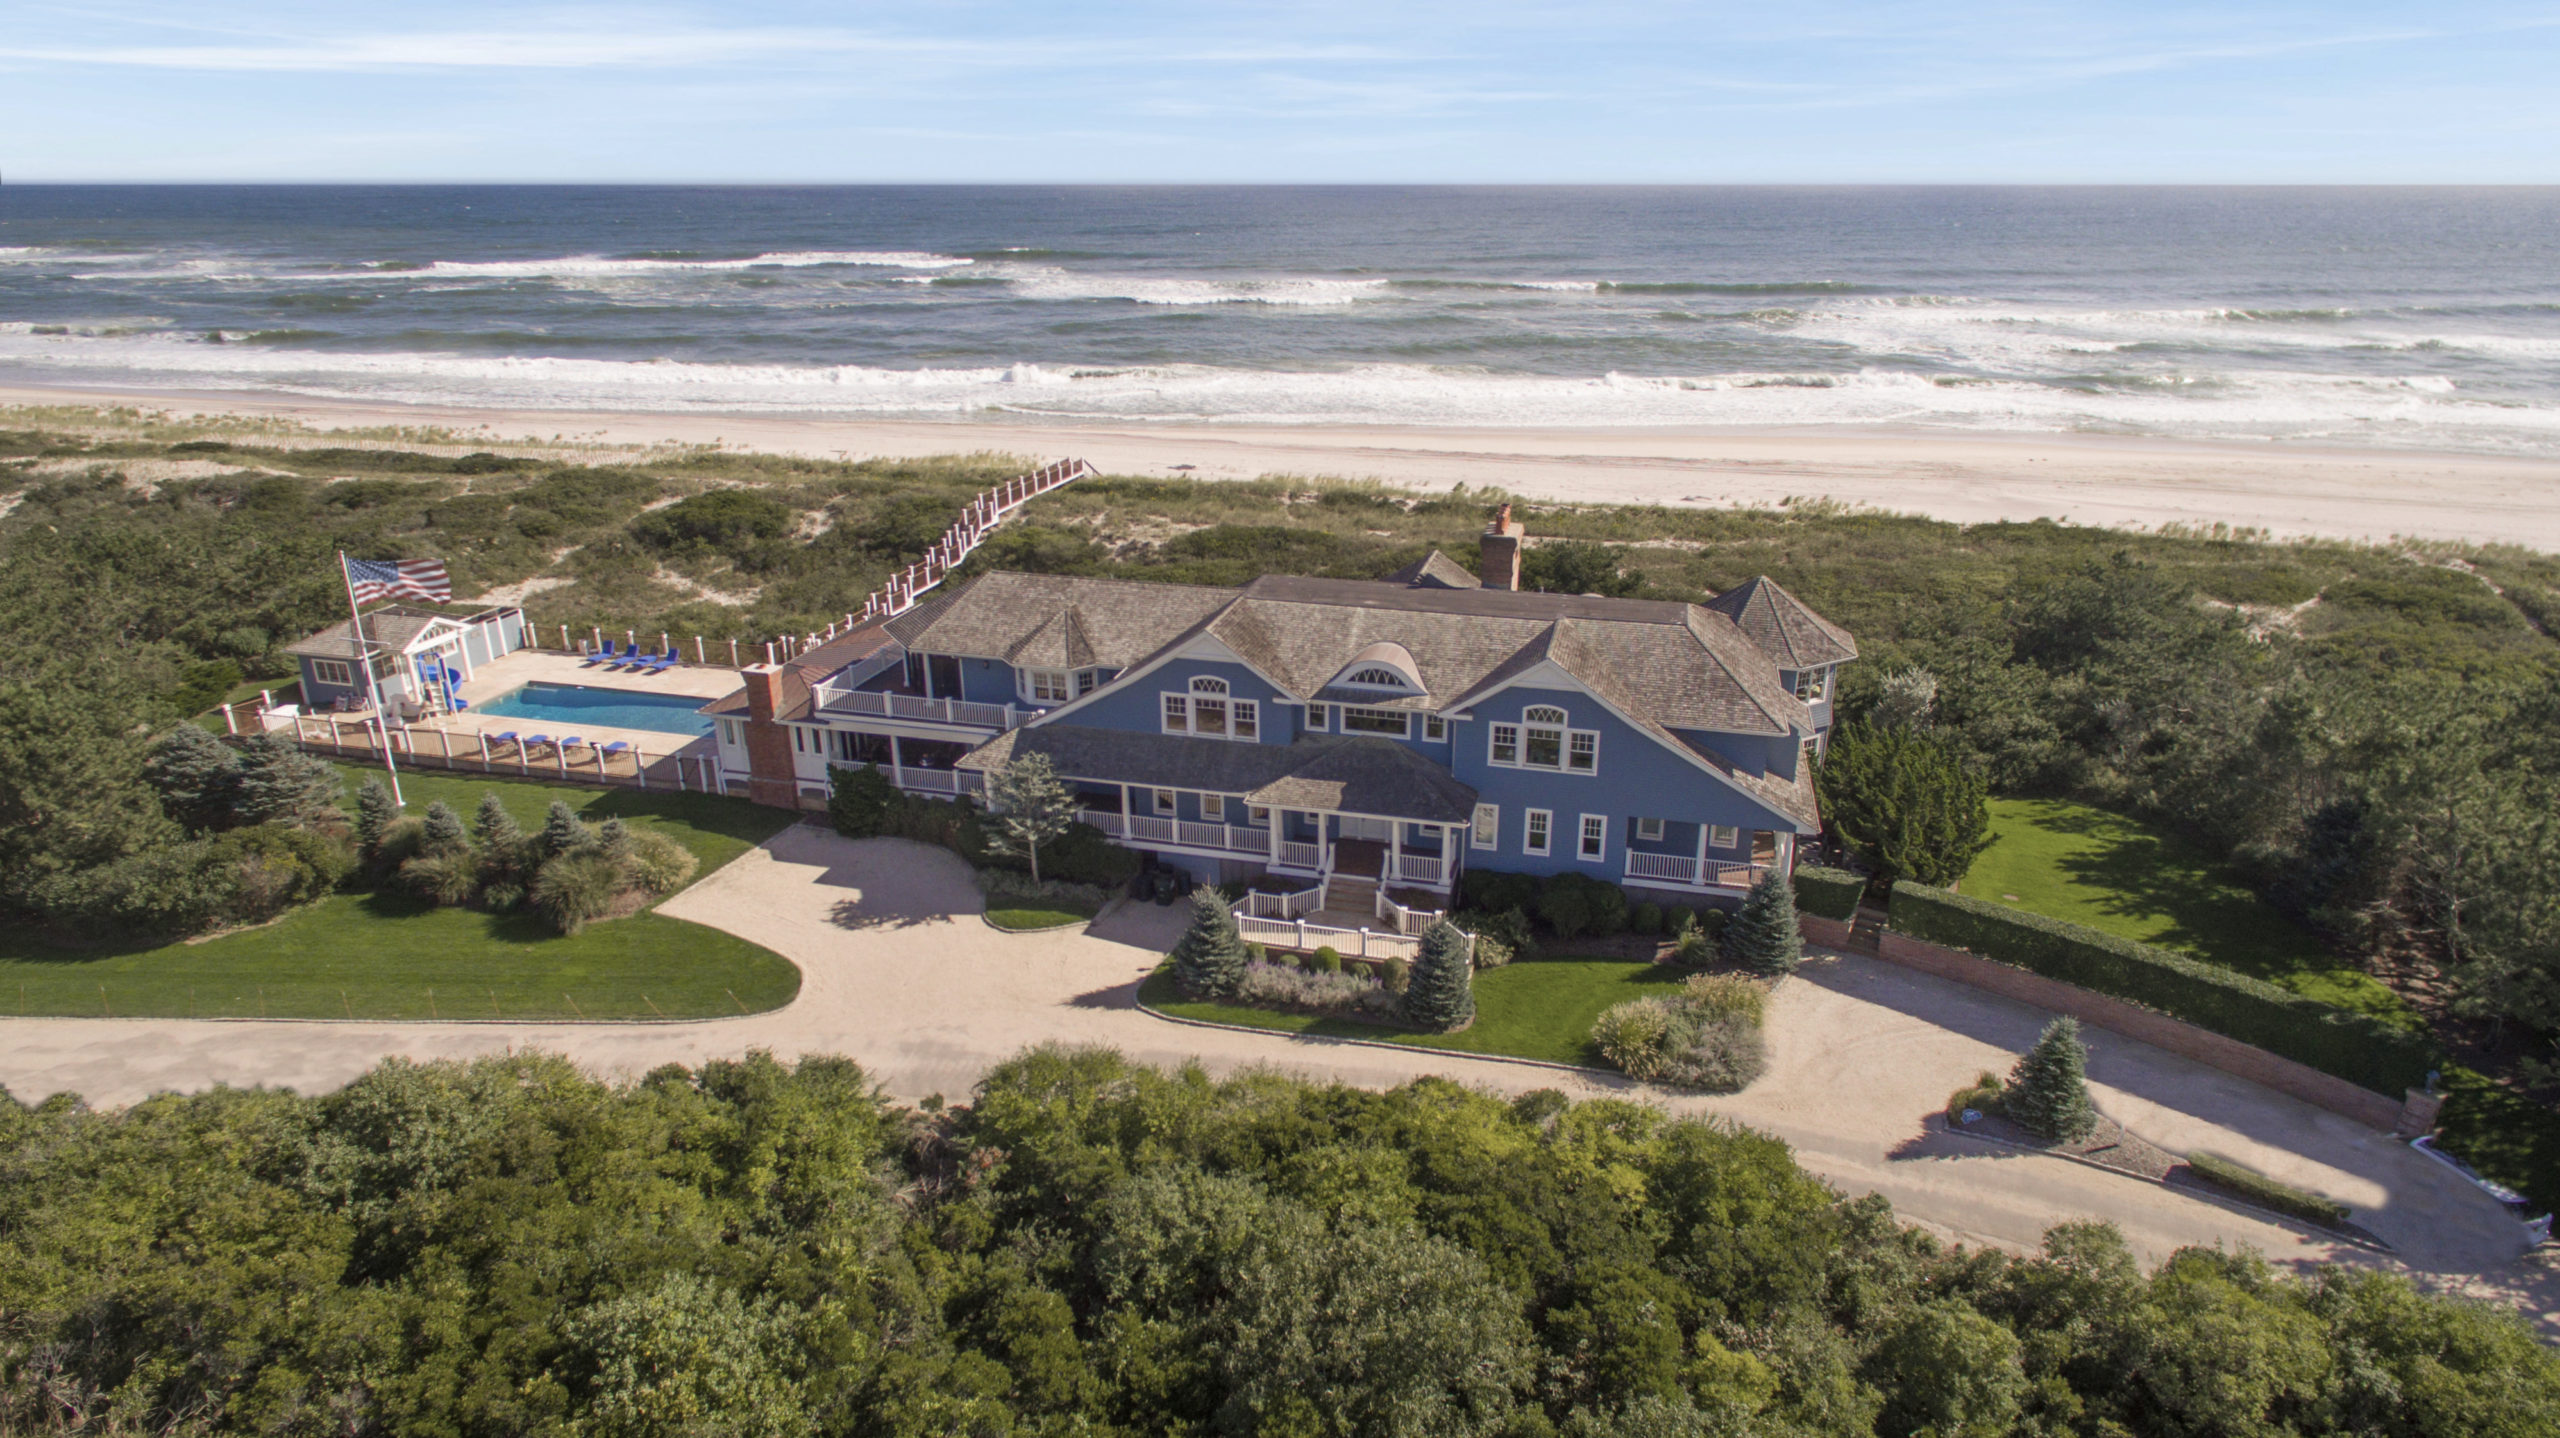 370 Fowler Street, Water Mill, the No. 7 Hamptons home sale of 2019. COURTESY DOUGLAS ELLIMAN